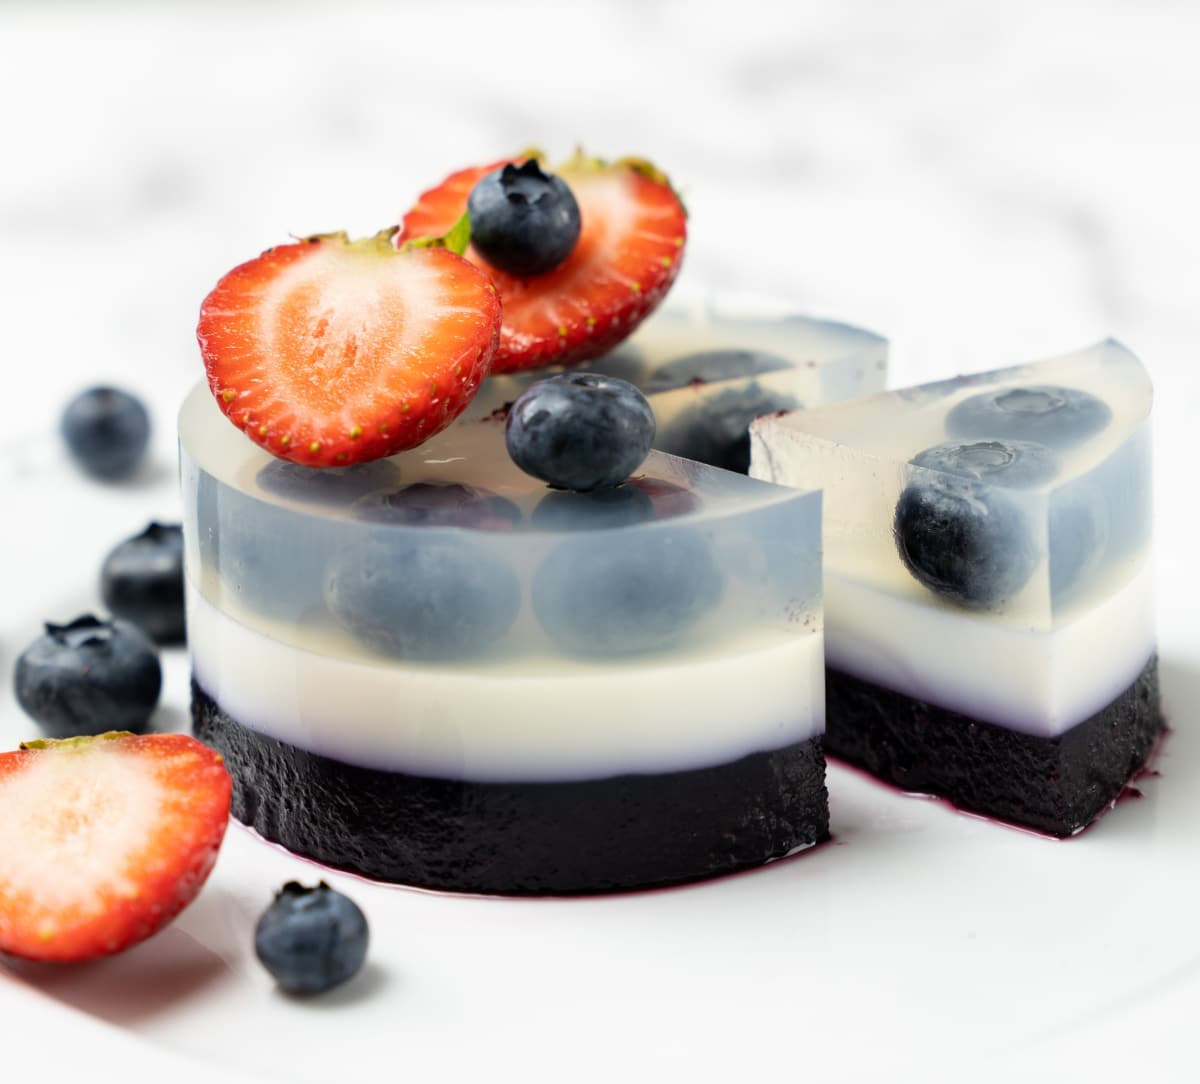 layered blueberry agar dessert topped with strawberries and blueberries with a slice cut out